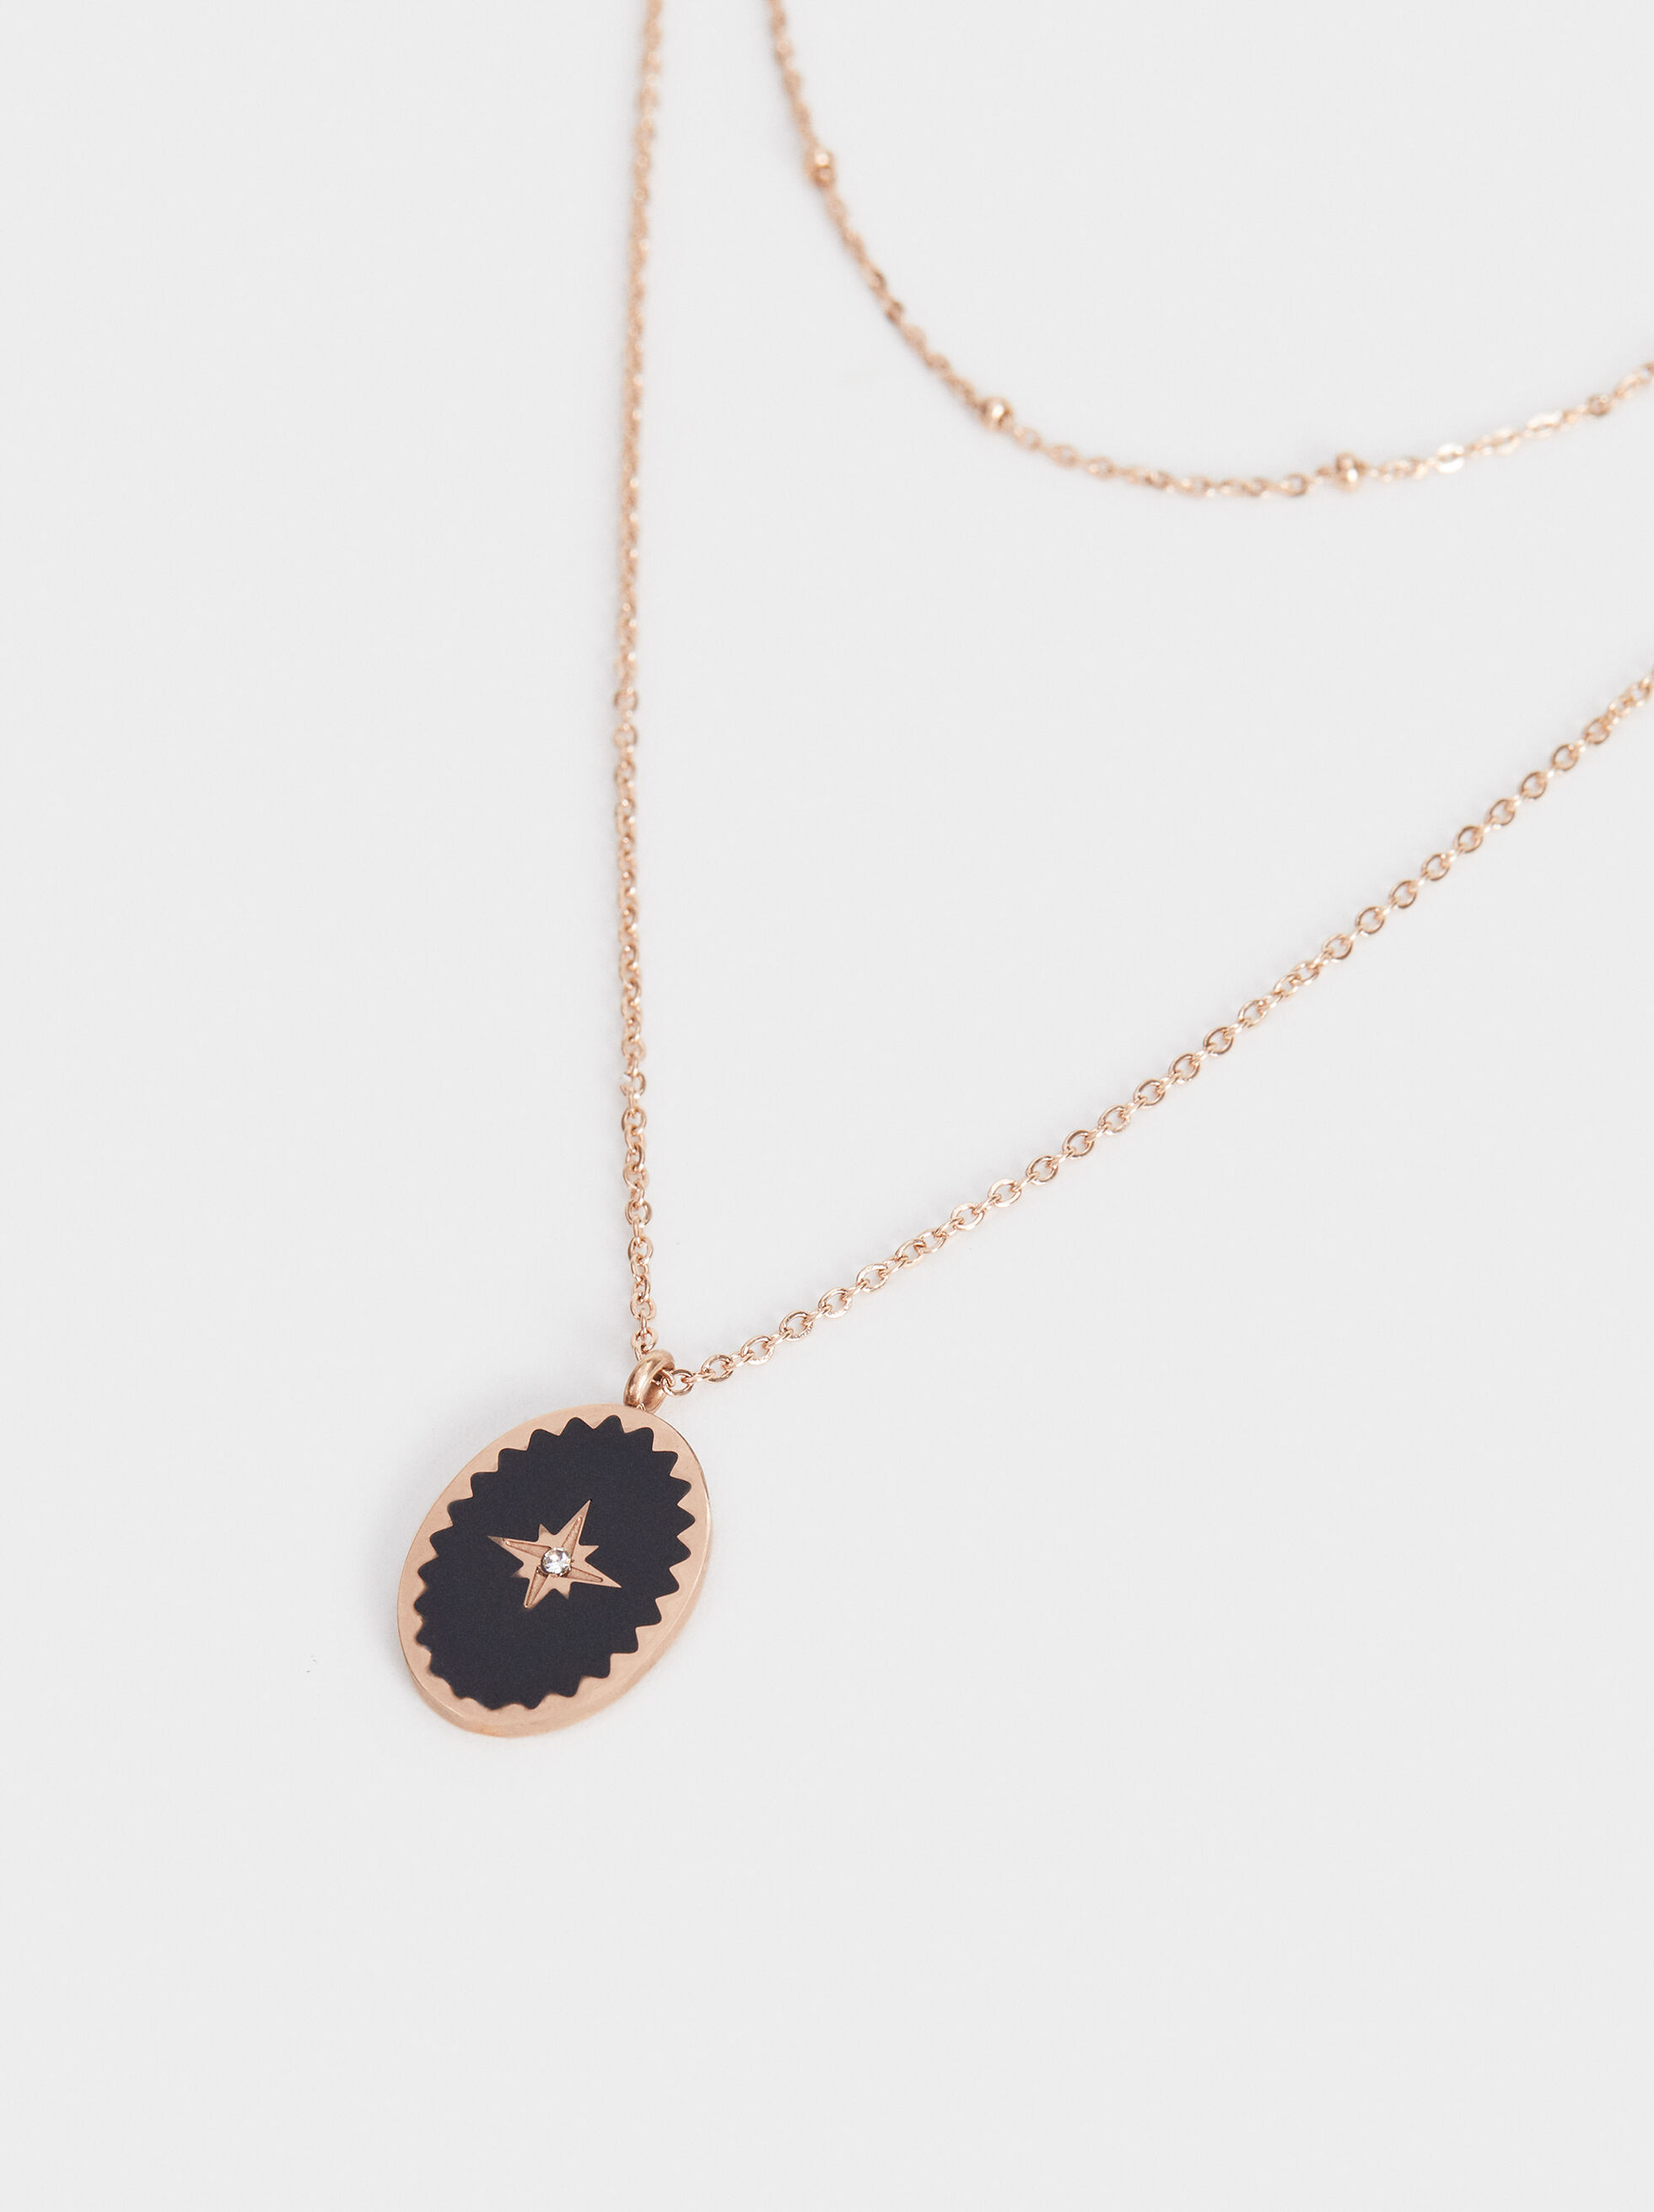 Steel Necklace Set With Star Pendant, Multicolor, hi-res